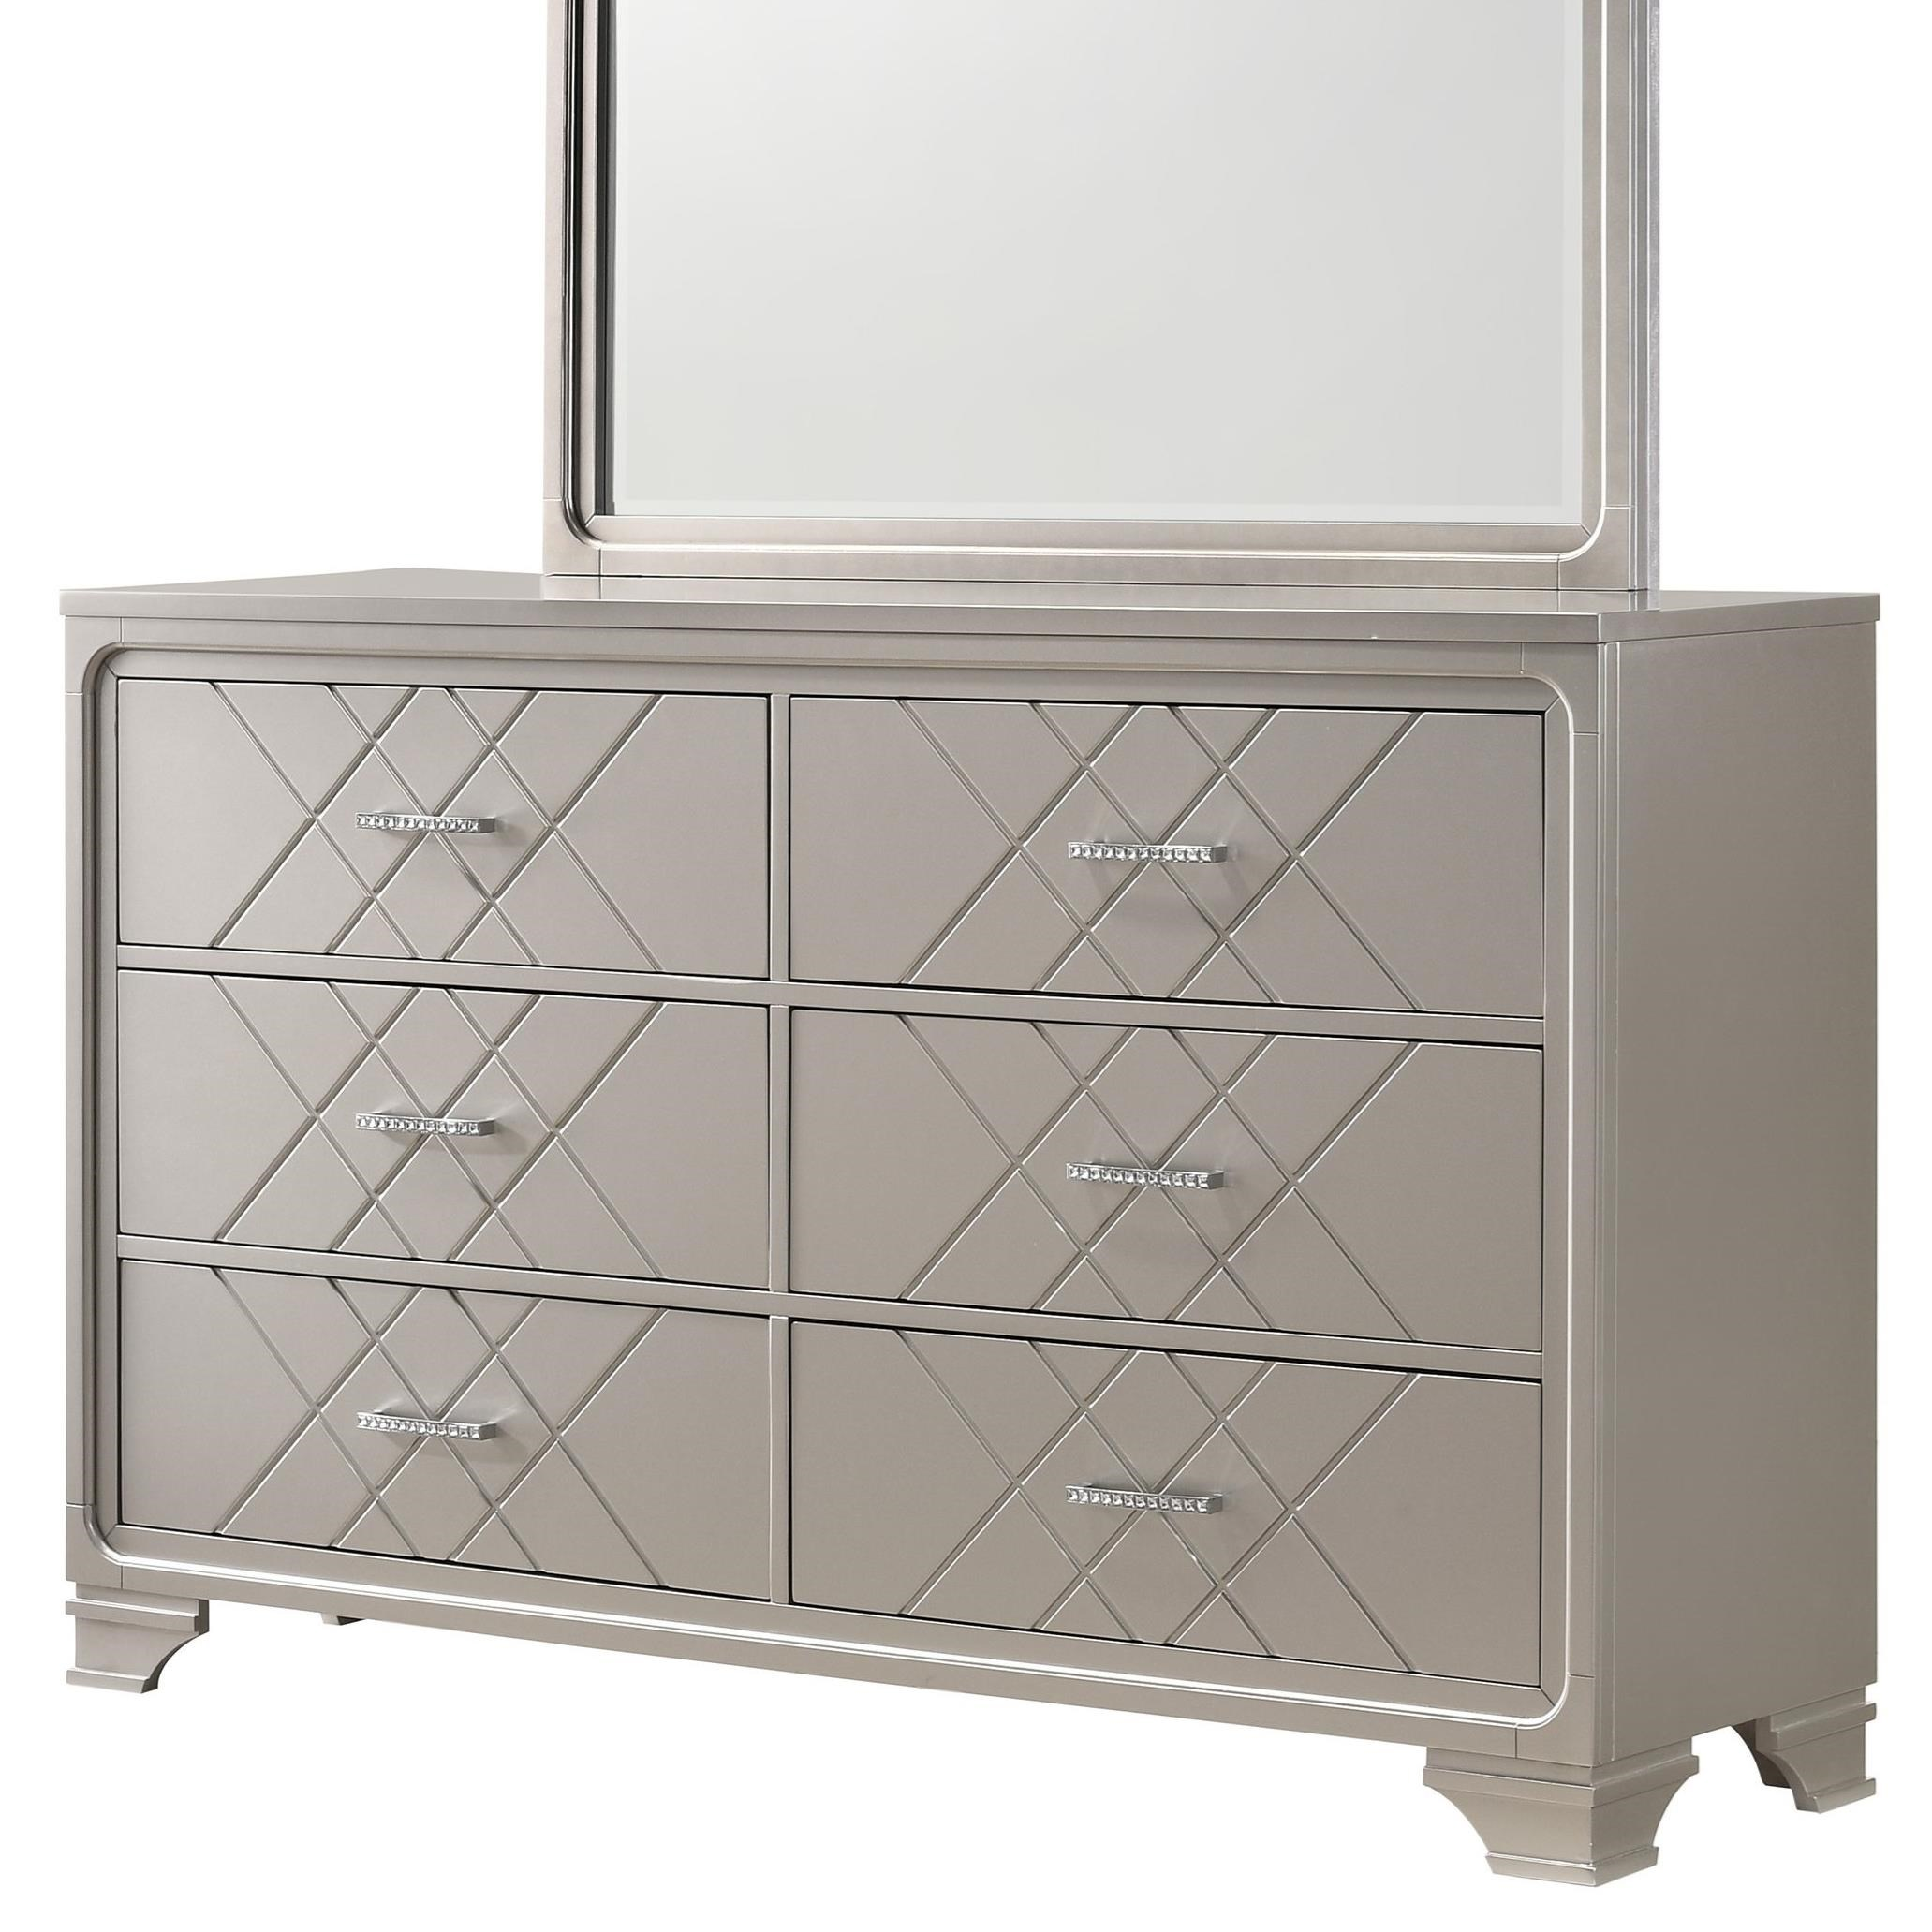 Phoebe Dresser by Crown Mark at Northeast Factory Direct